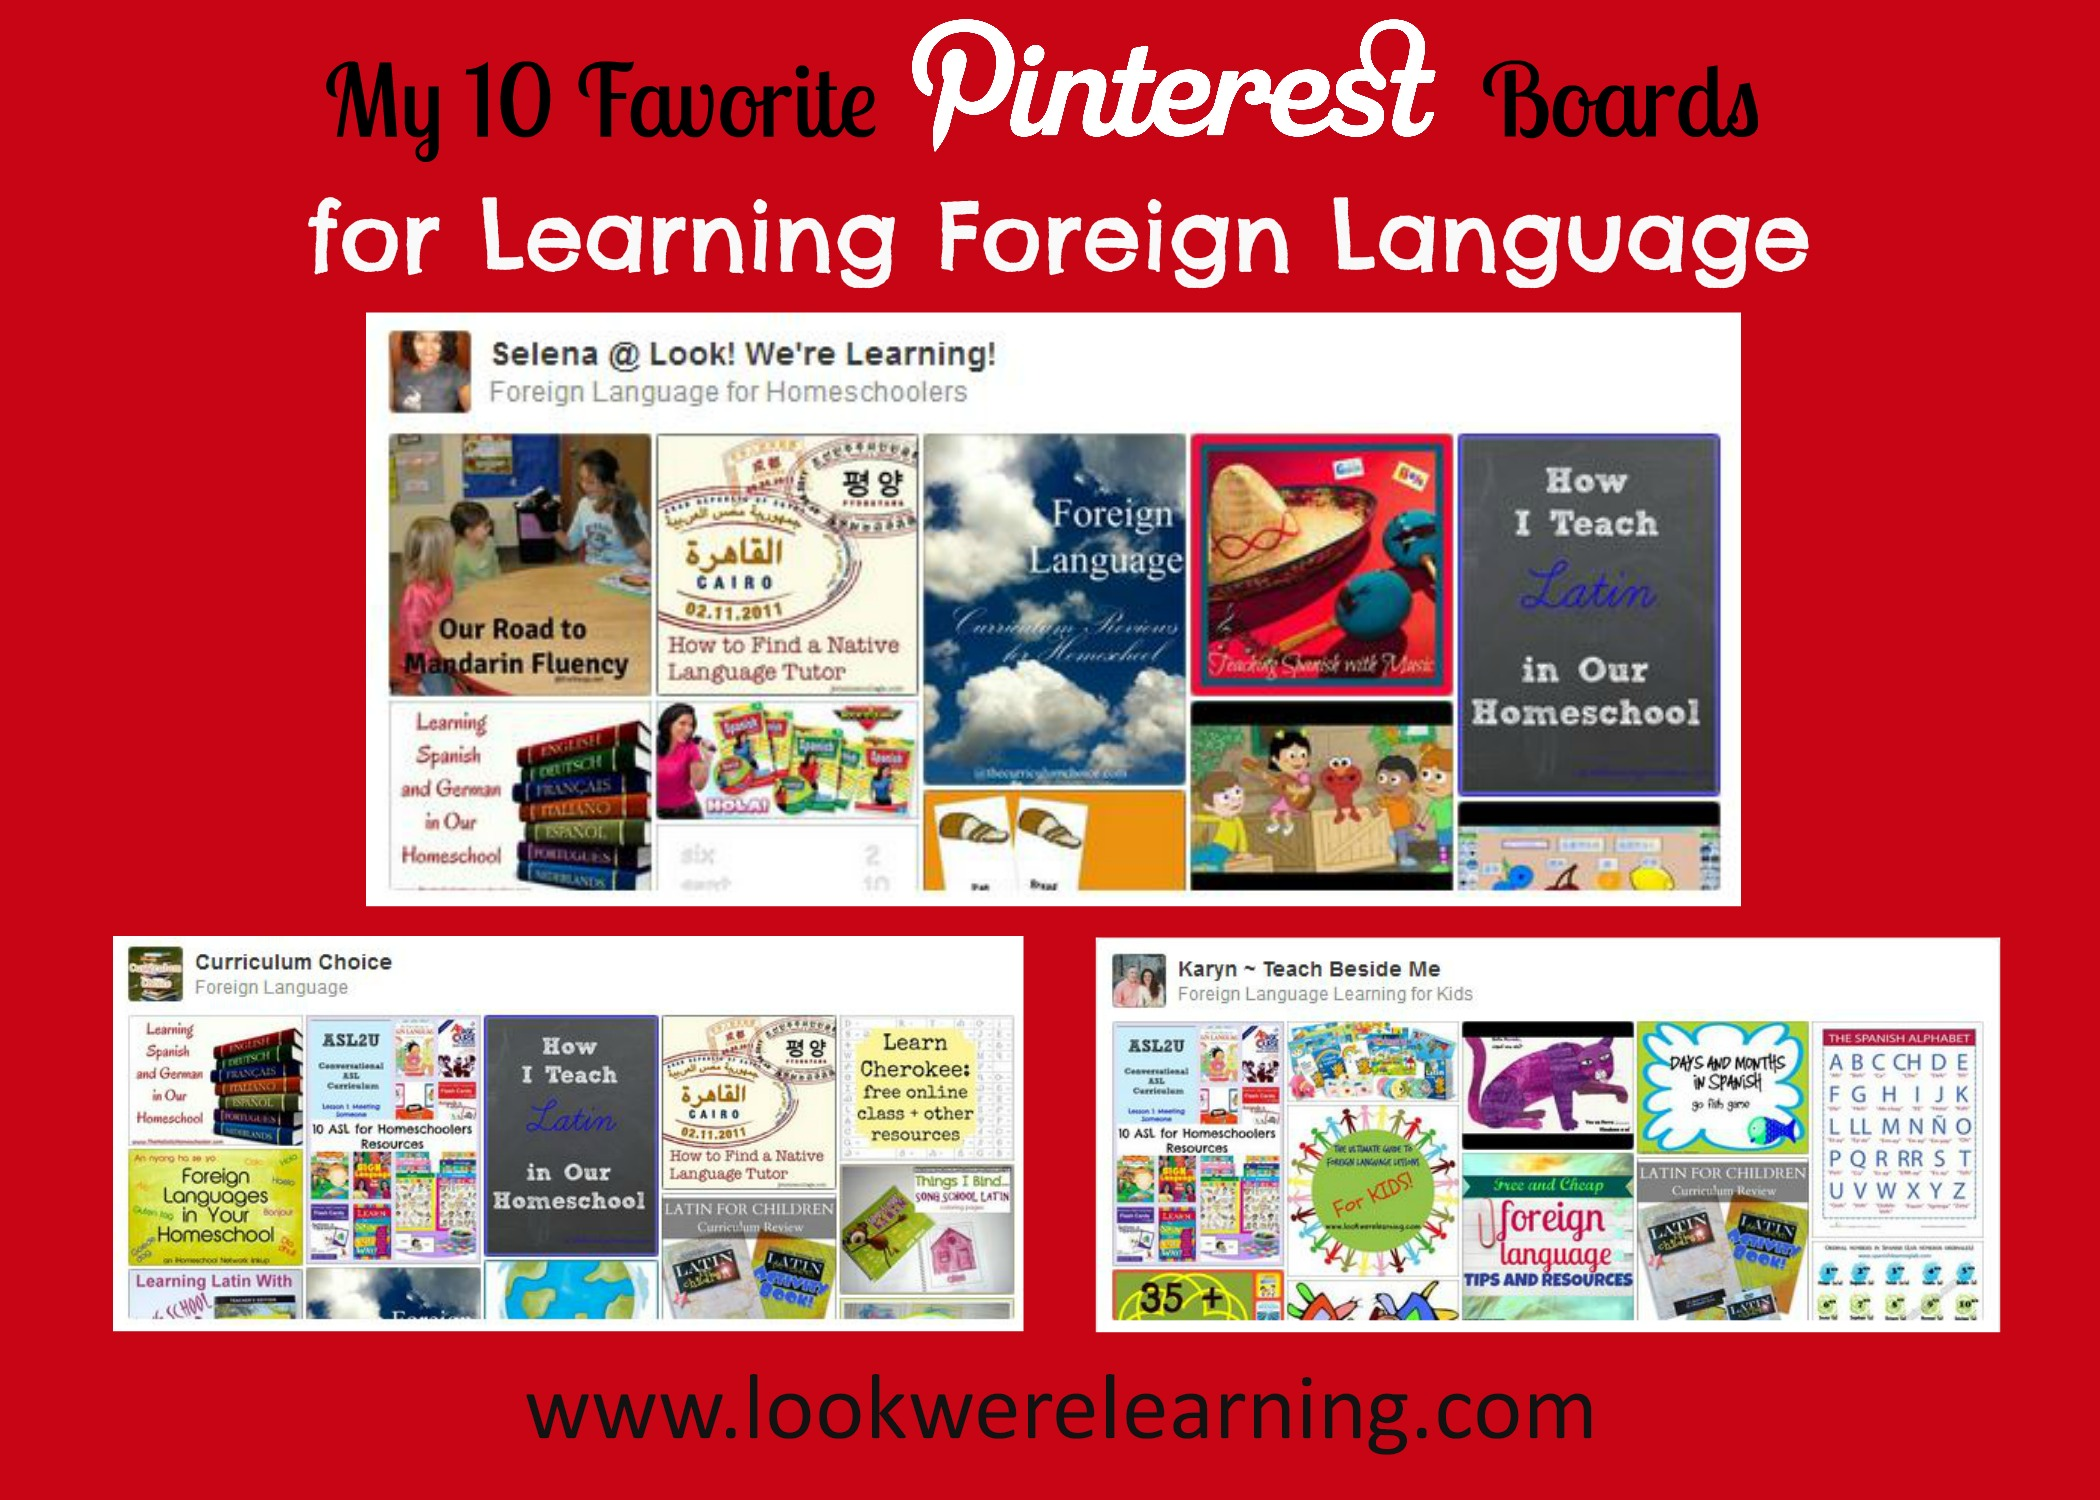 10 Must Follow Pinterest Boards for Learning Foreign Language - Look! We're Learning!